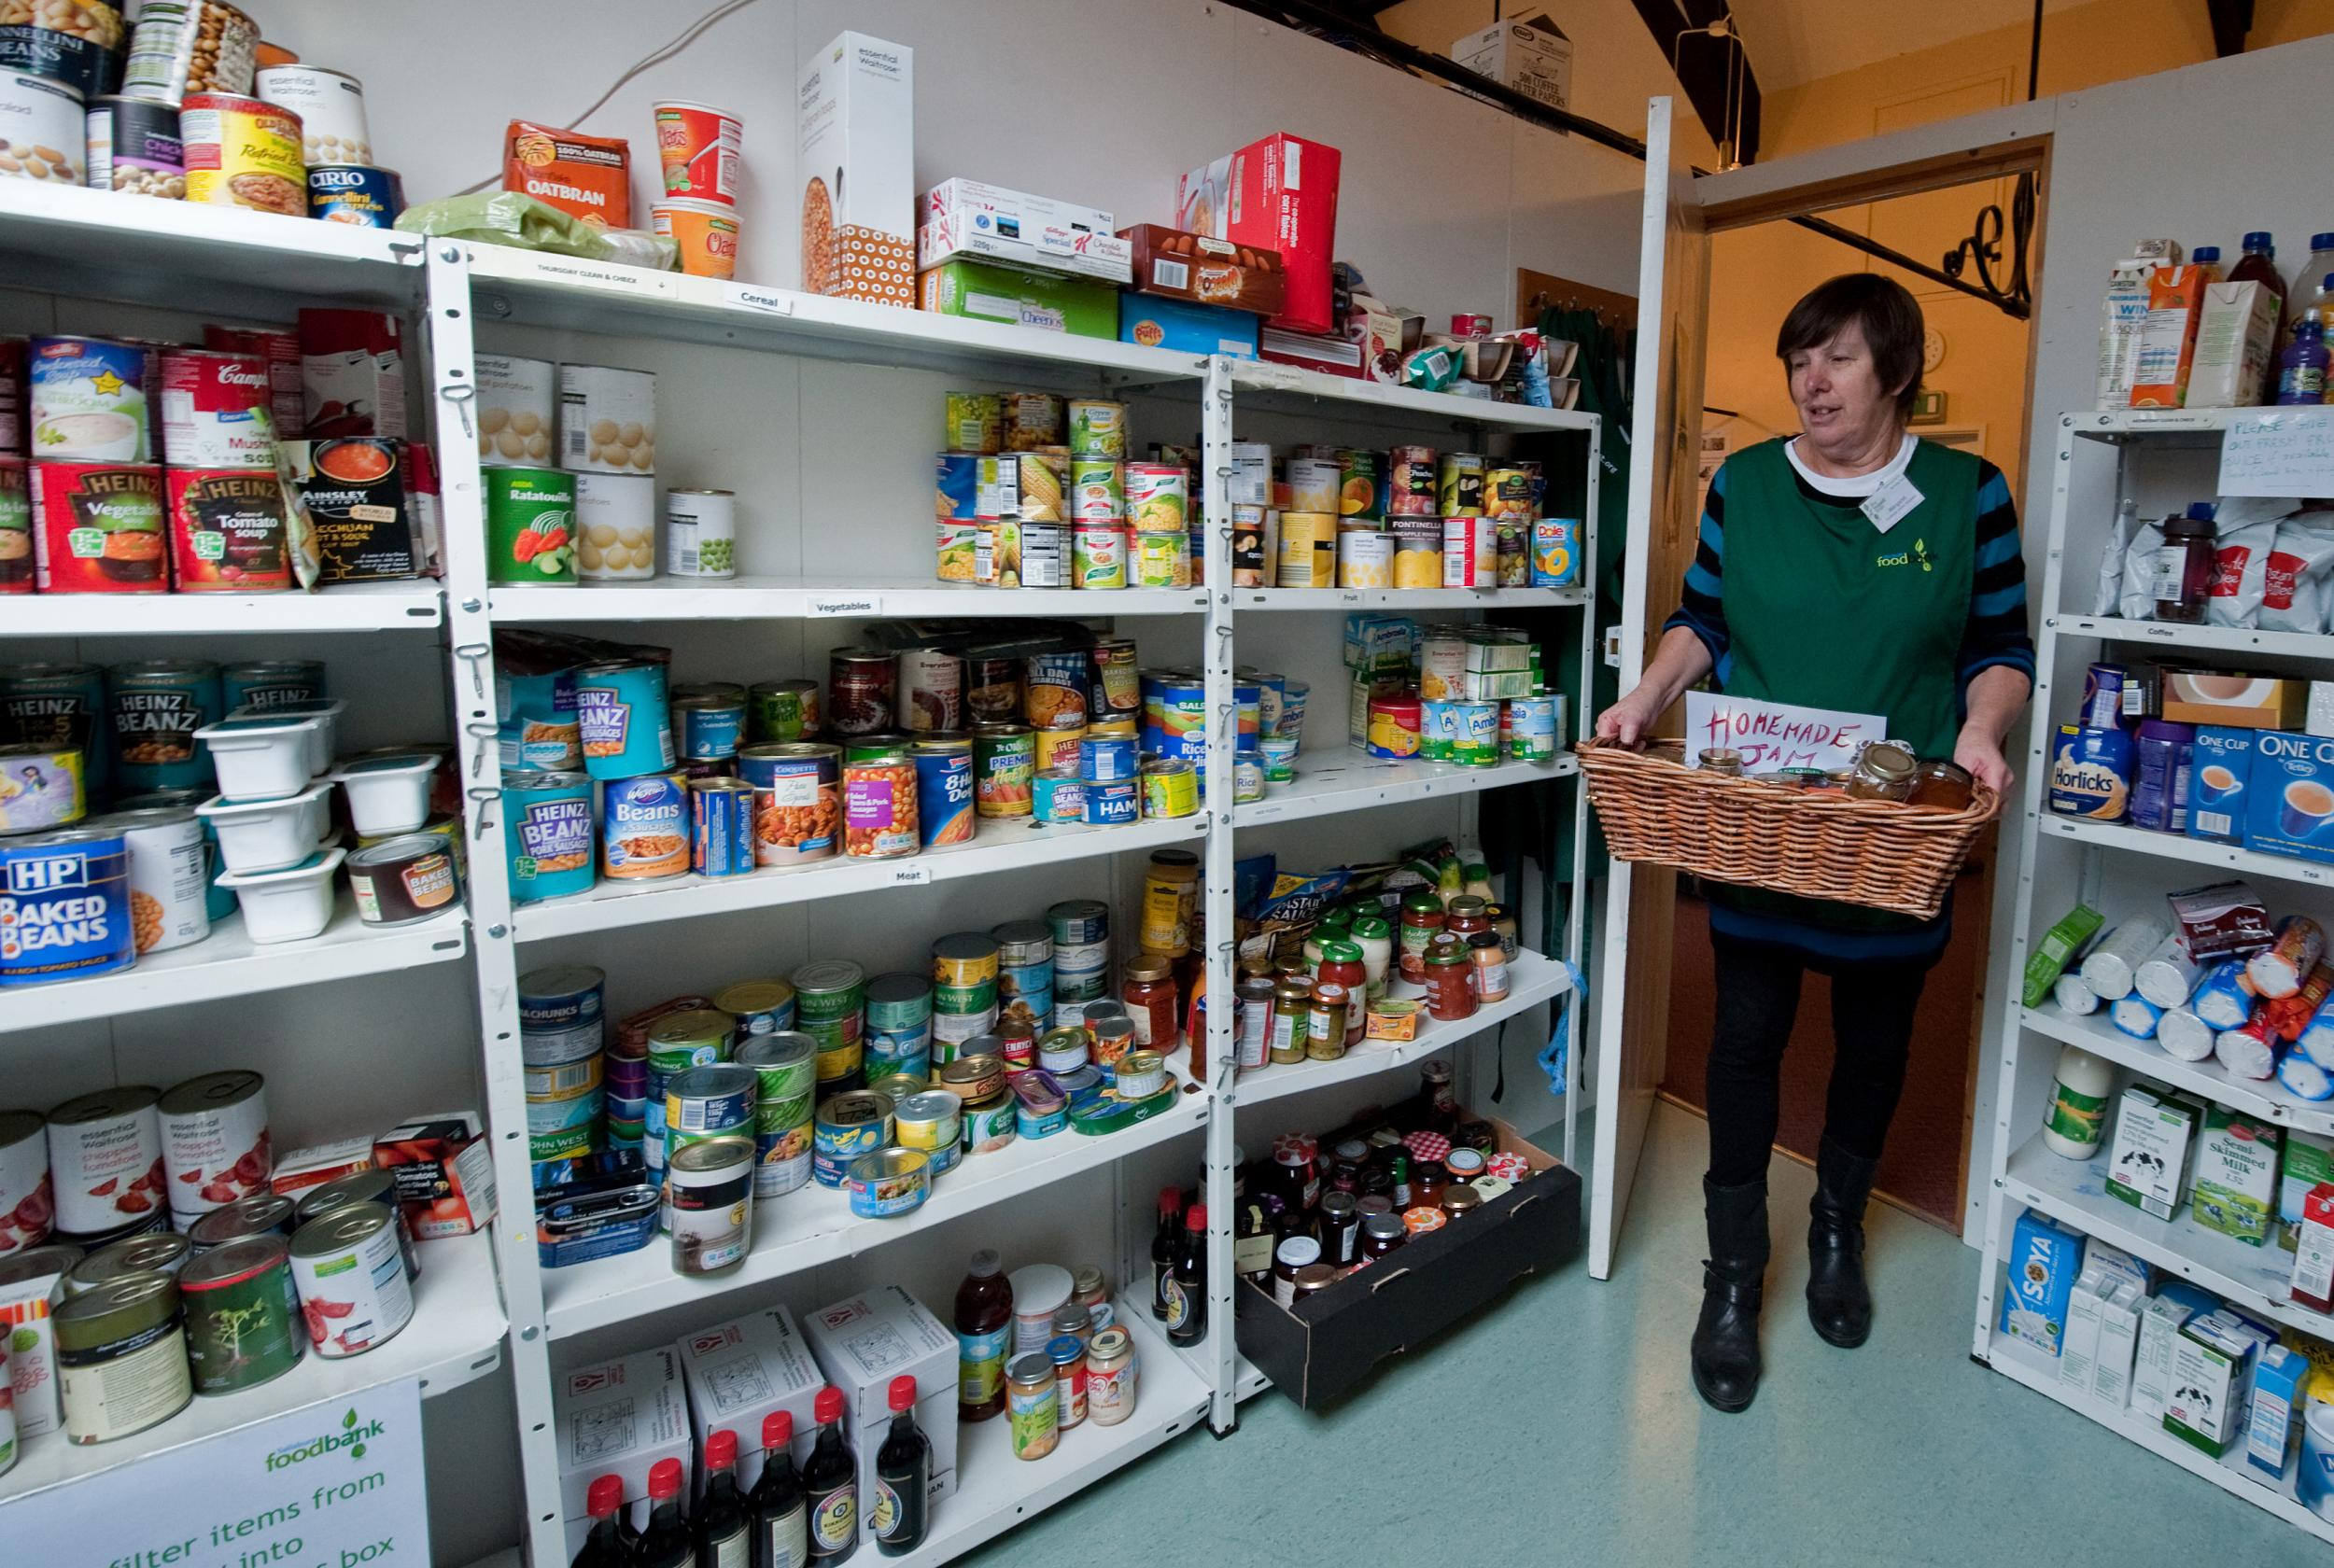 Foodbanks to start offering financial and debt advice after Martin Lewis donation | The Independentindependent_brand_ident_LOGOUntitled